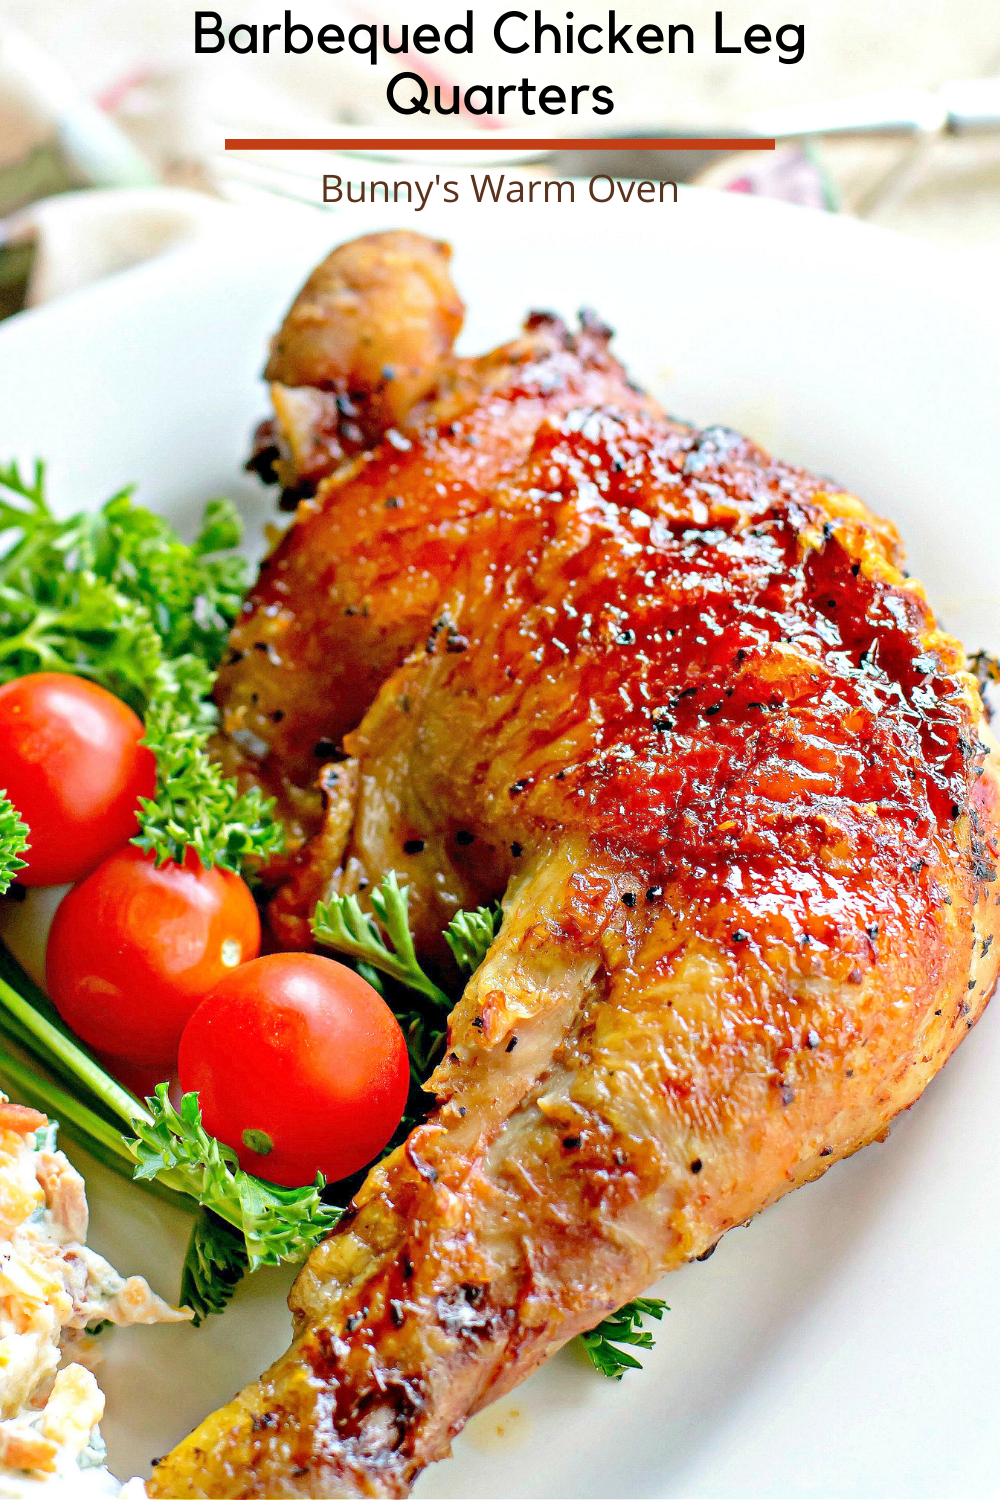 Barbecued Chicken Leg Quarters